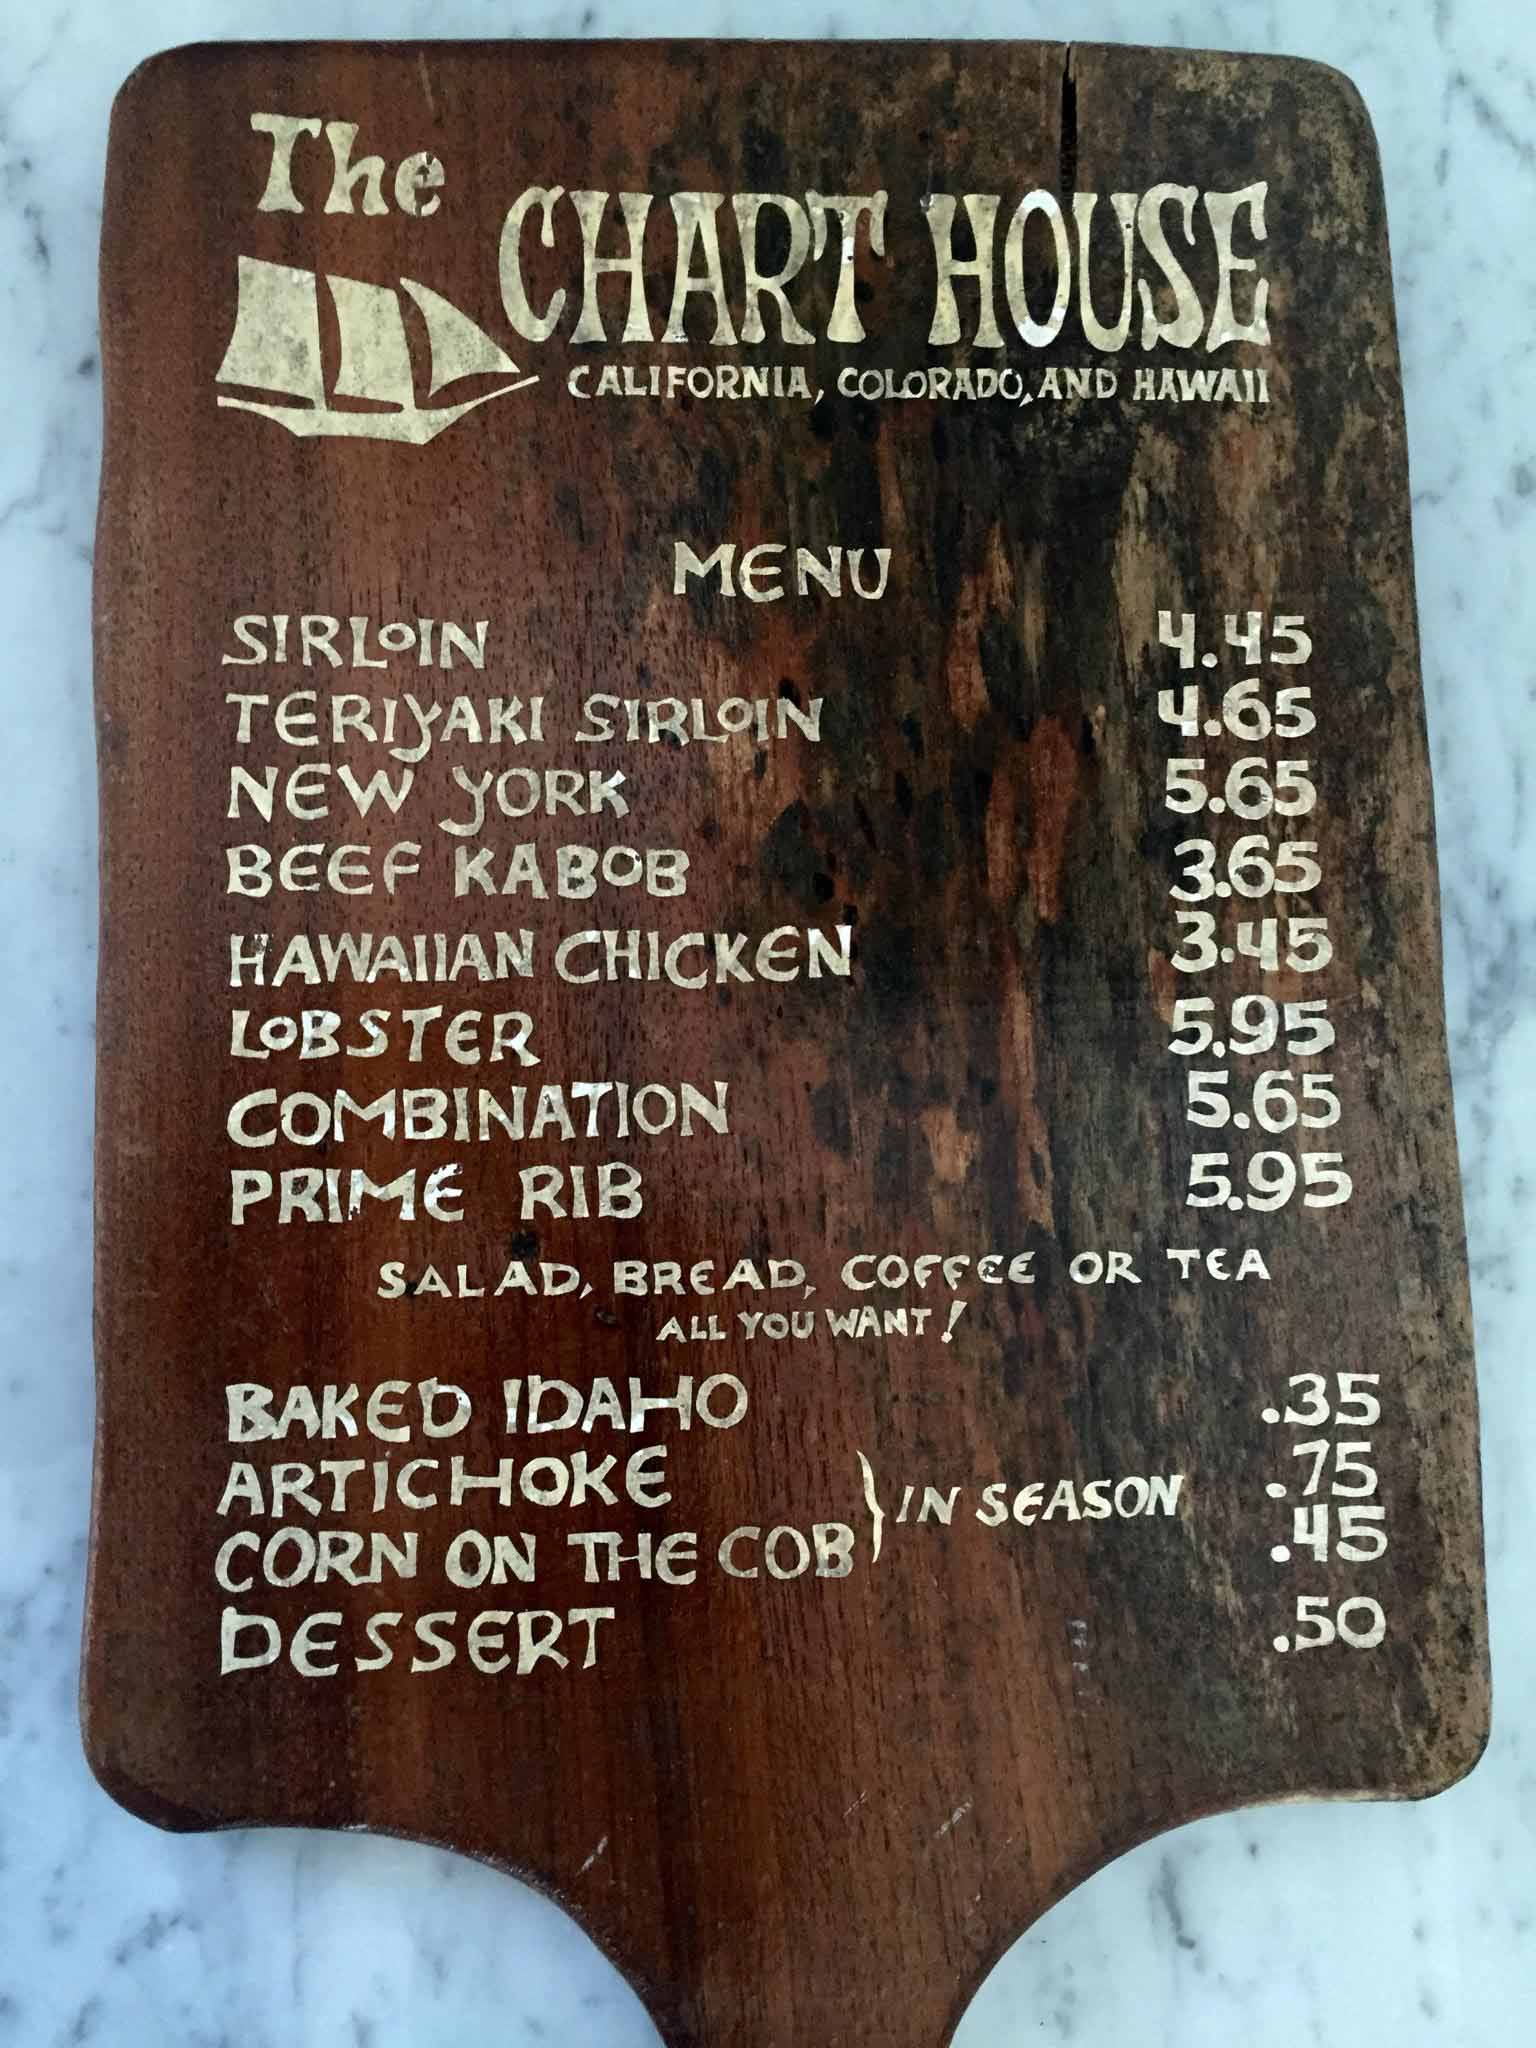 Where Hundreds Of Photos From The Chart House Reunion Are Posted Restaurant Is Open Daily 11 30 A M To 9 P Winter Hours Serving Lunch